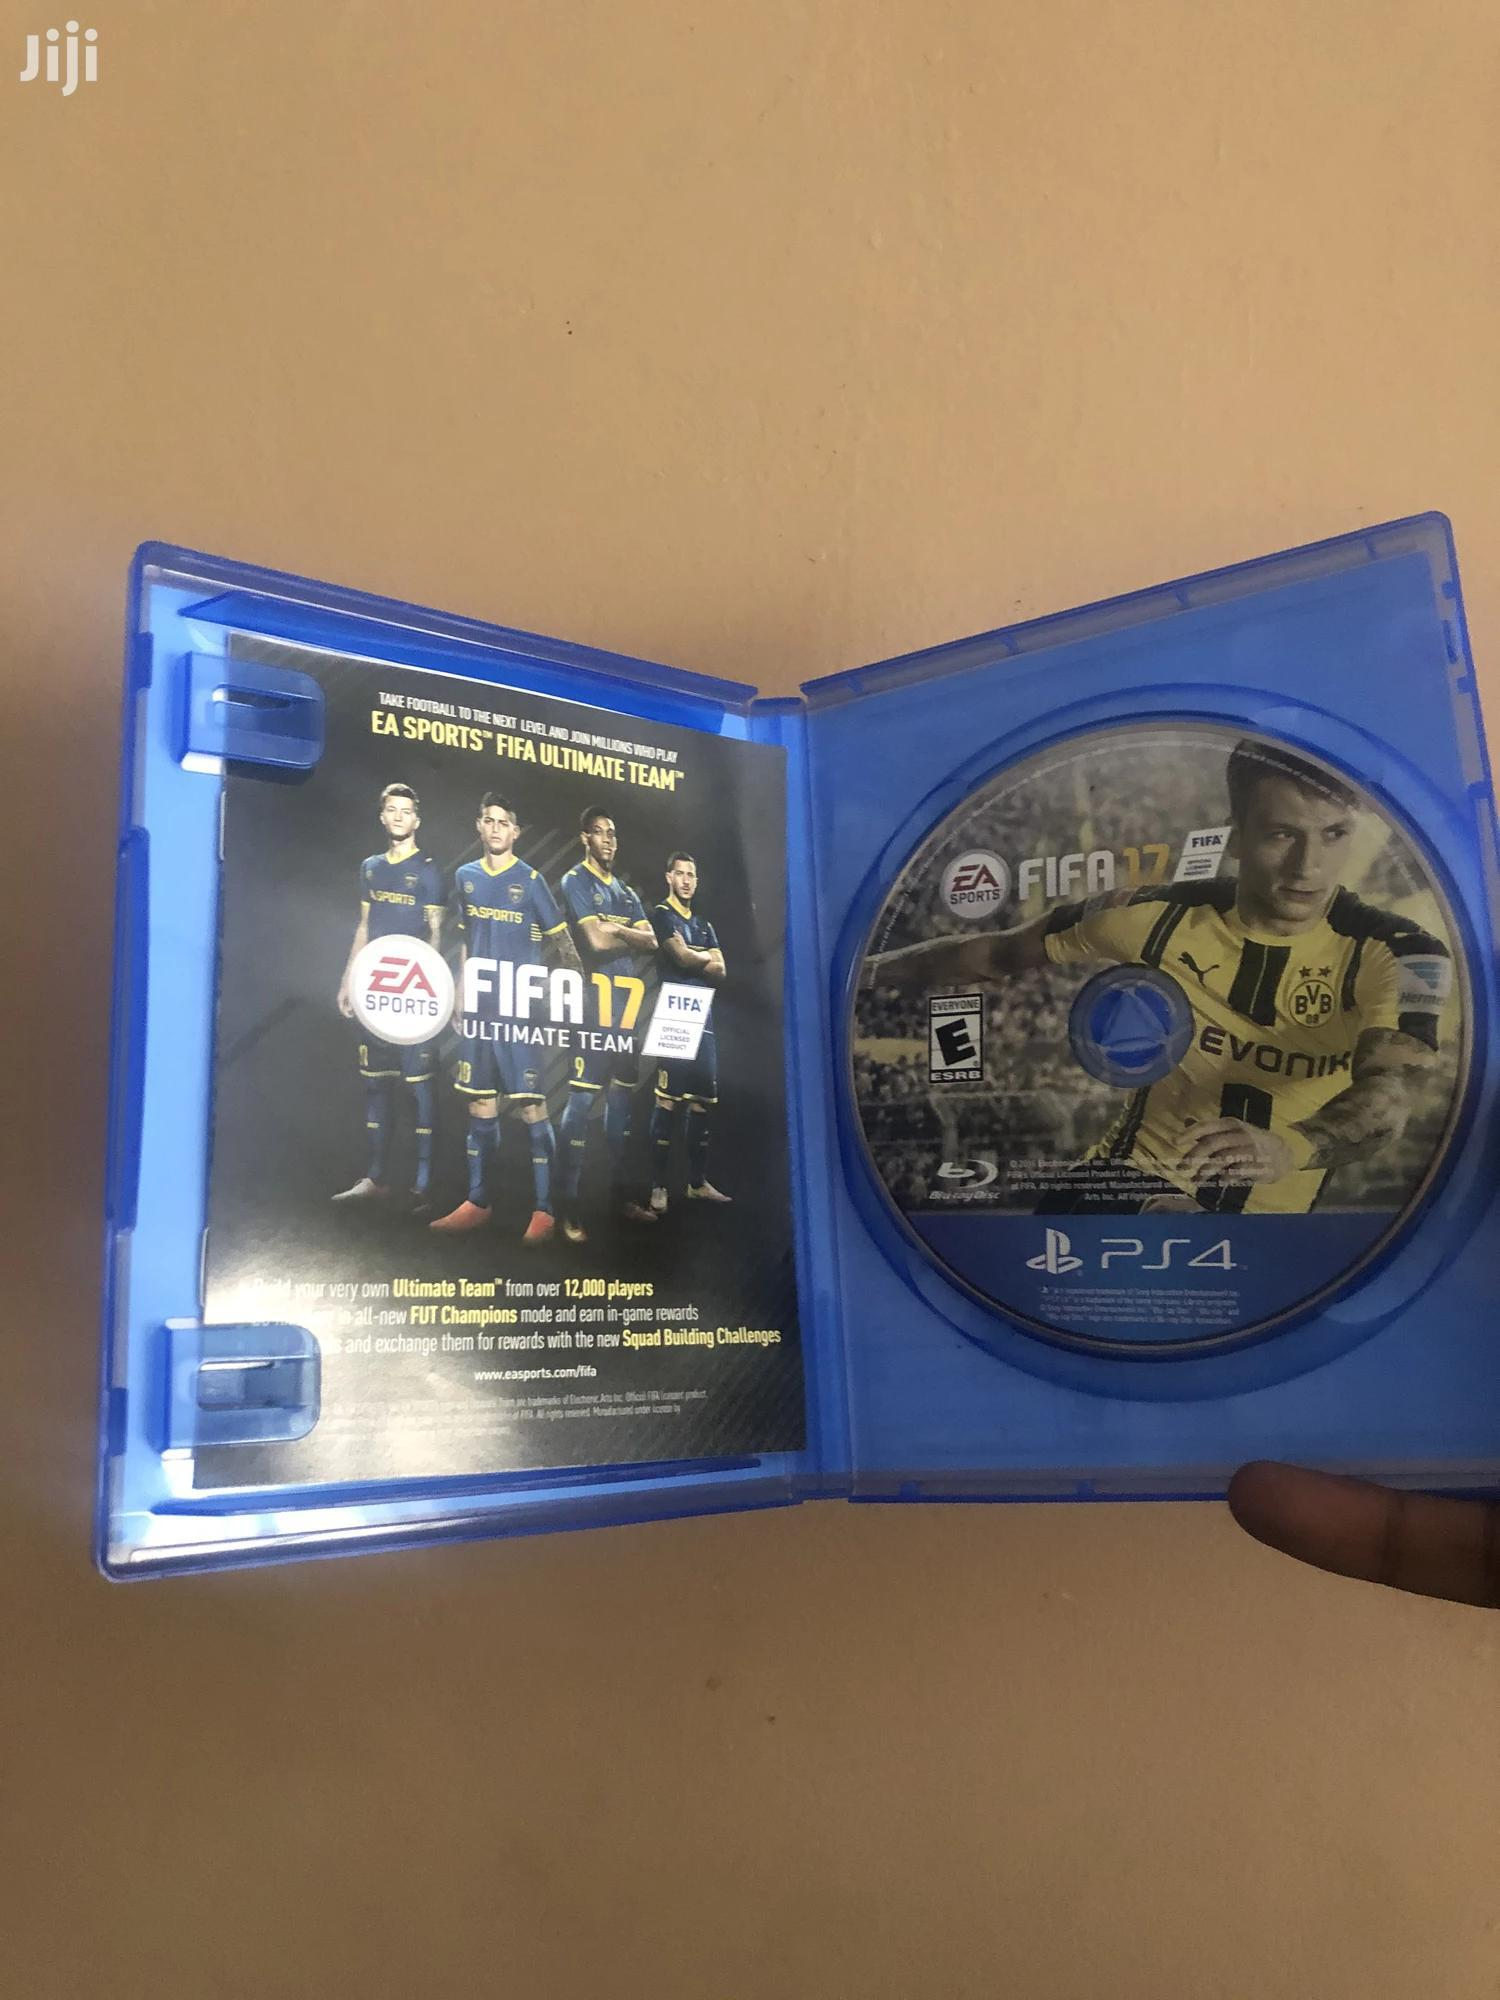 Ps4 Cd Games ( Fifa 17) | Video Games for sale in Arusha, Arusha Region, Tanzania